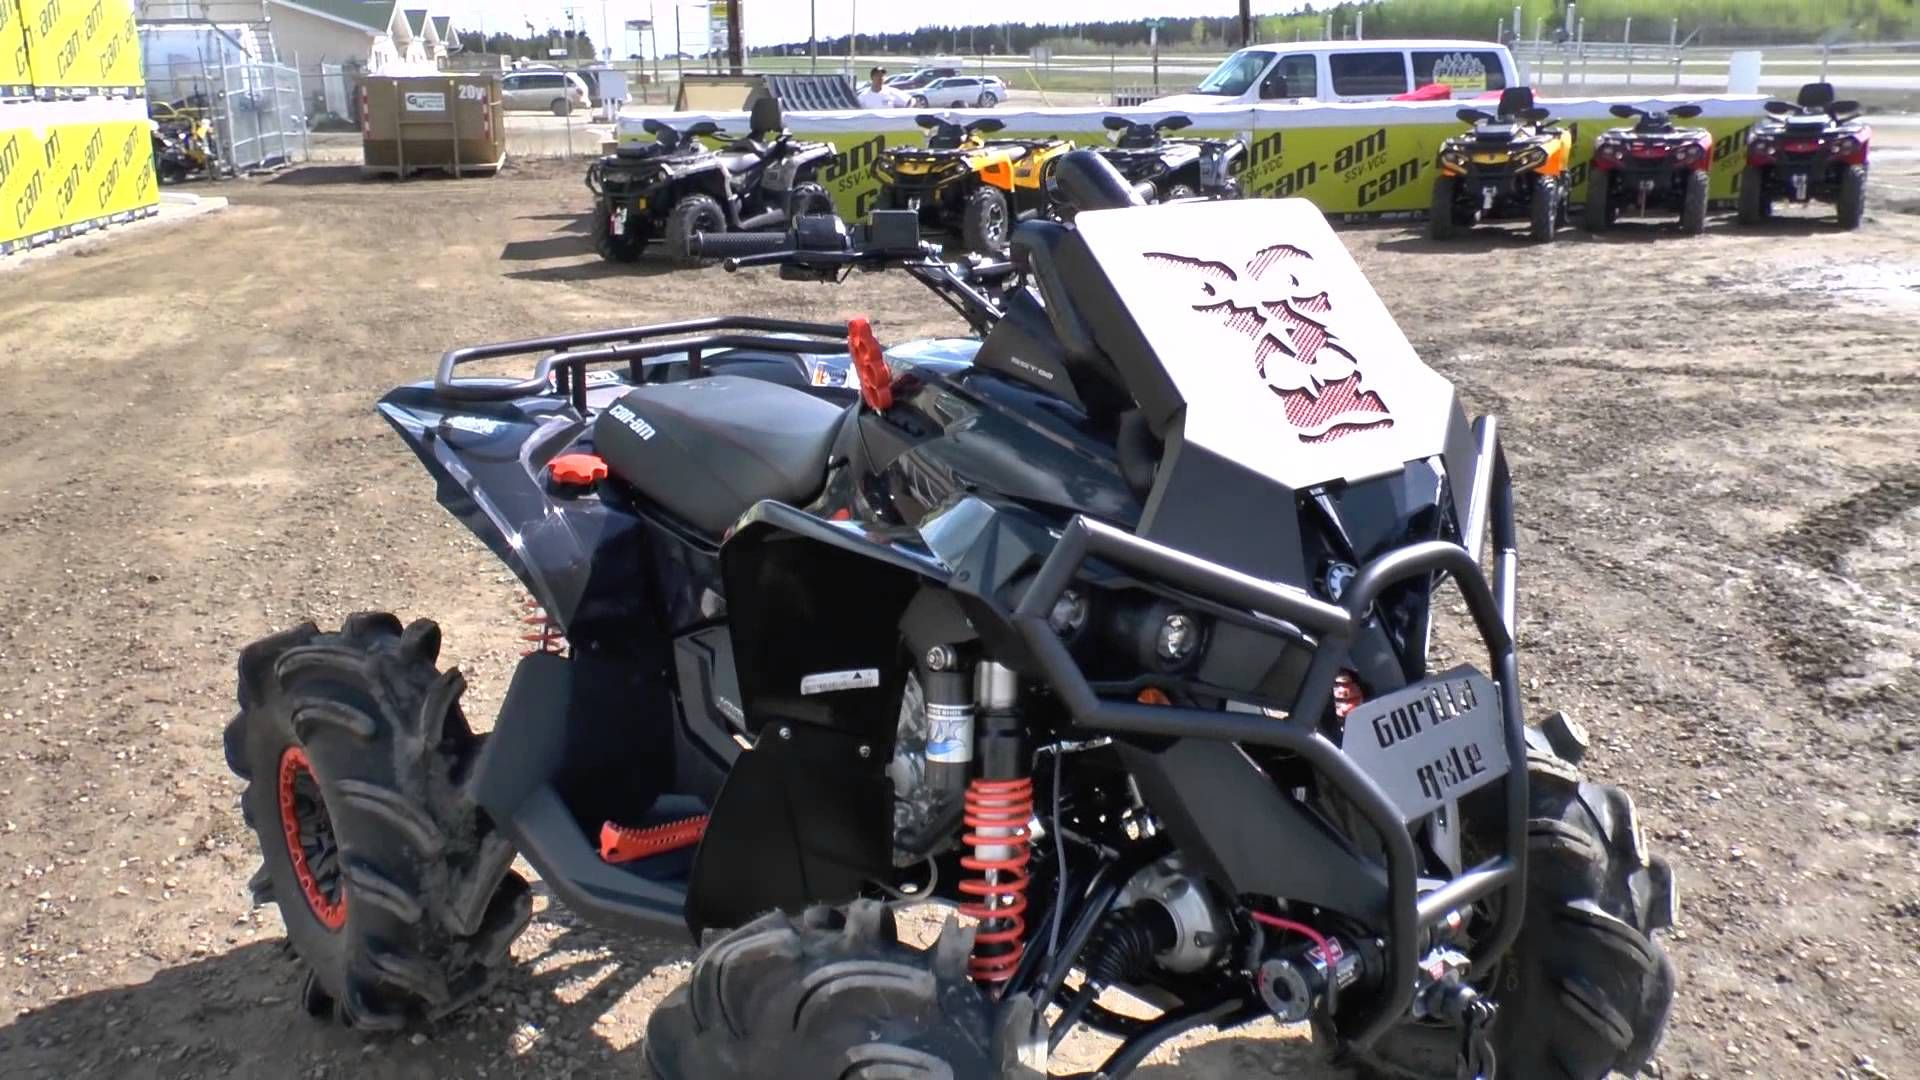 Jacked Up Modified Can Am Renegade 1000 S From The 13 Season Here At Pinespsm Can Am Renegade Mudding